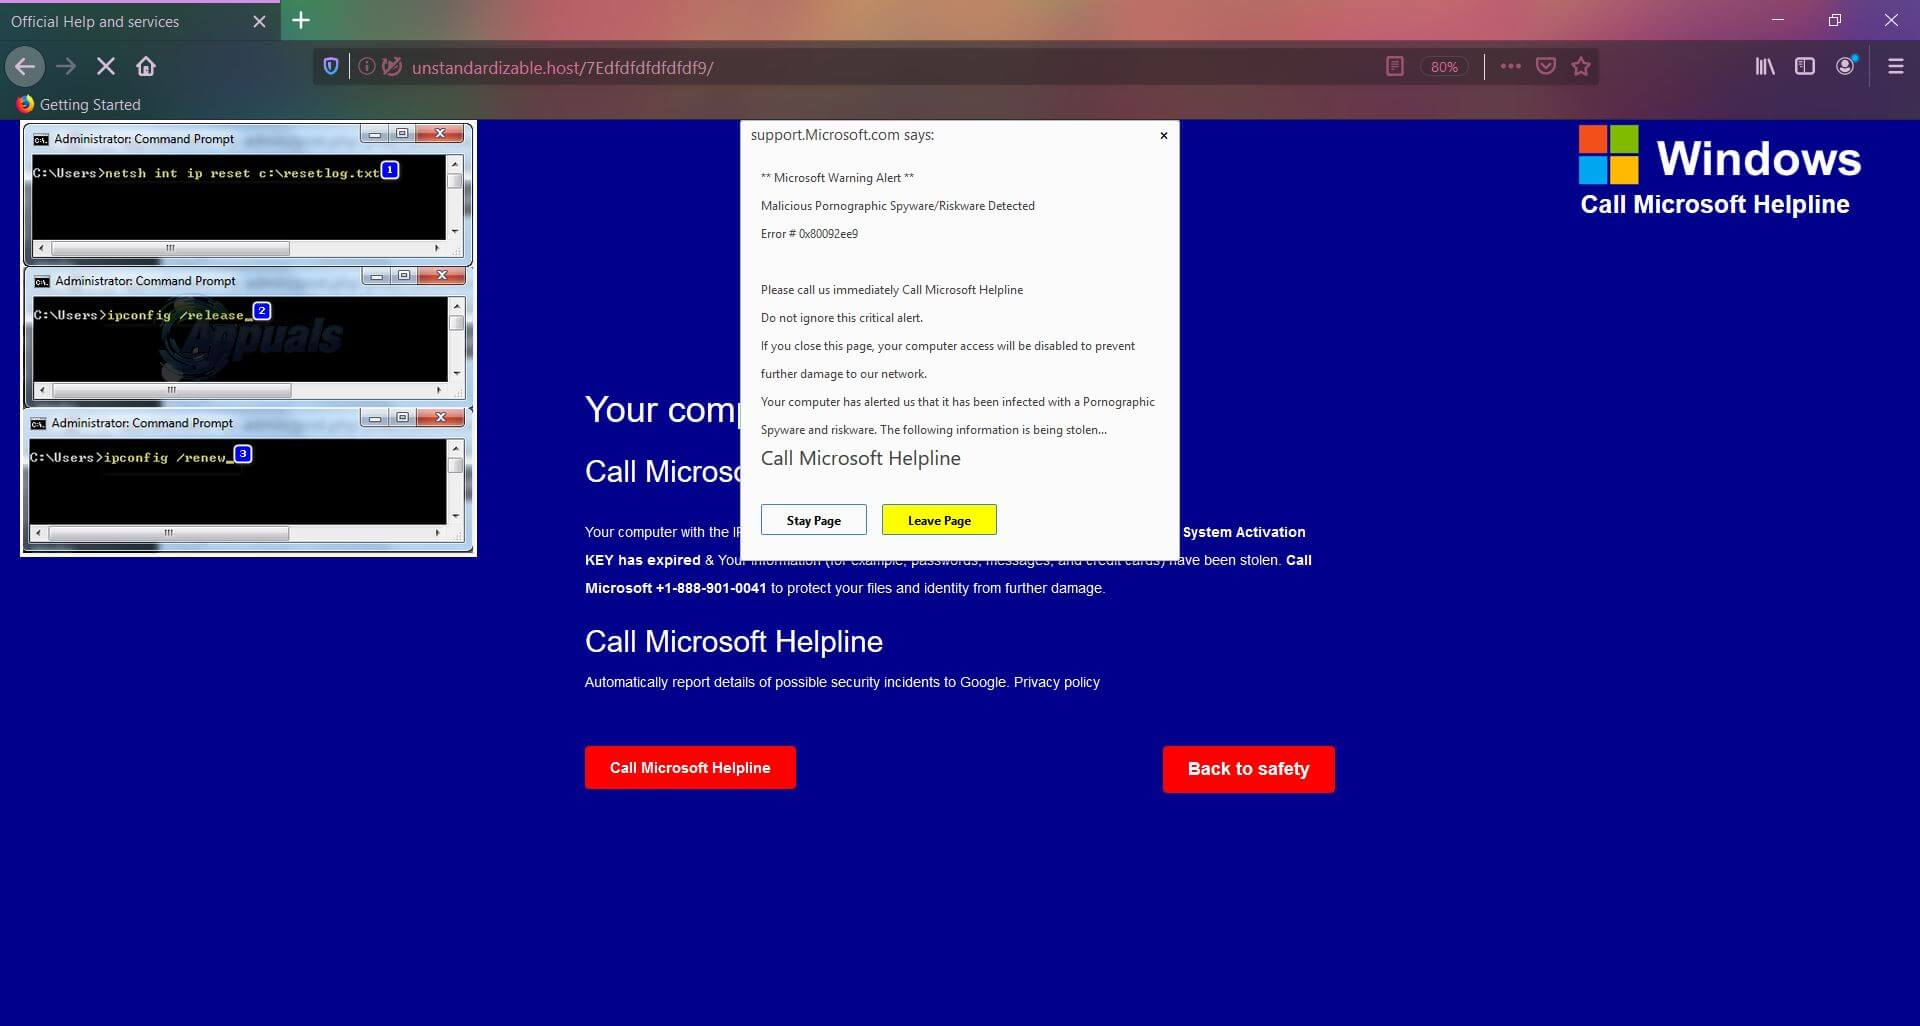 call microsoft helpline +1-888-901-0041 pop-up scam removal guide sensorstechforum